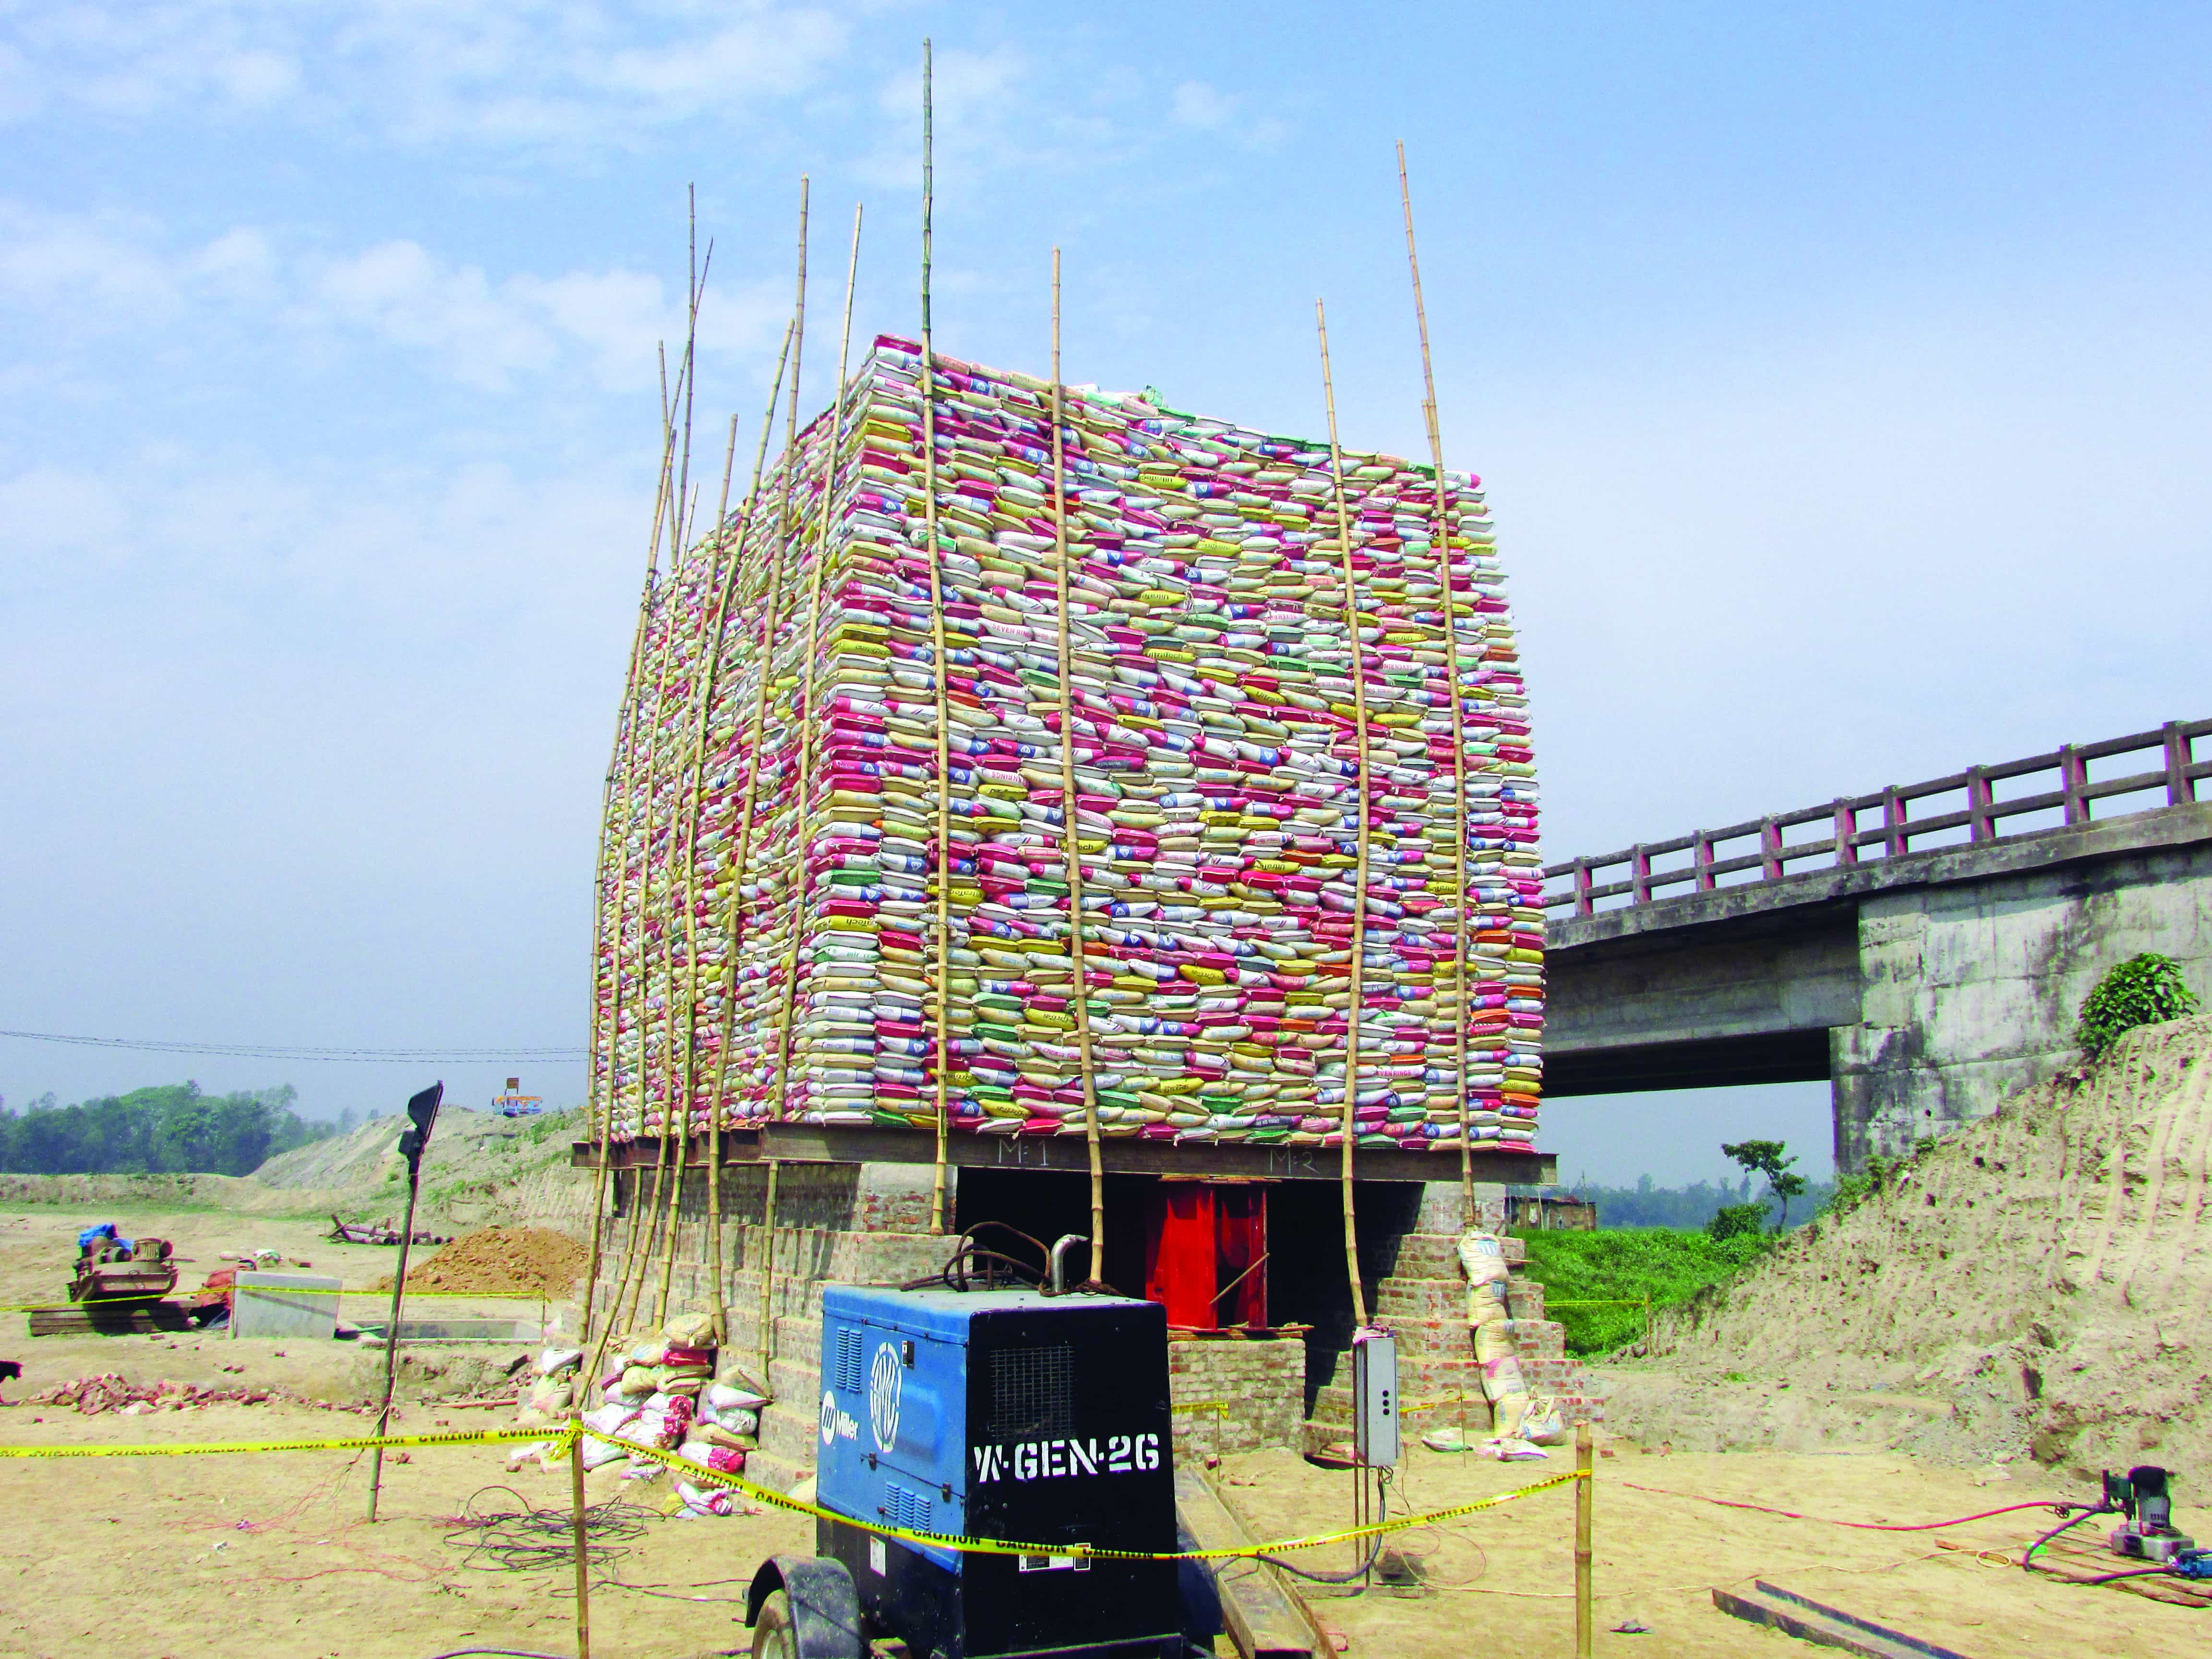 Pile load test by kentledge method for rail bridge on Titas river at Akhaura.